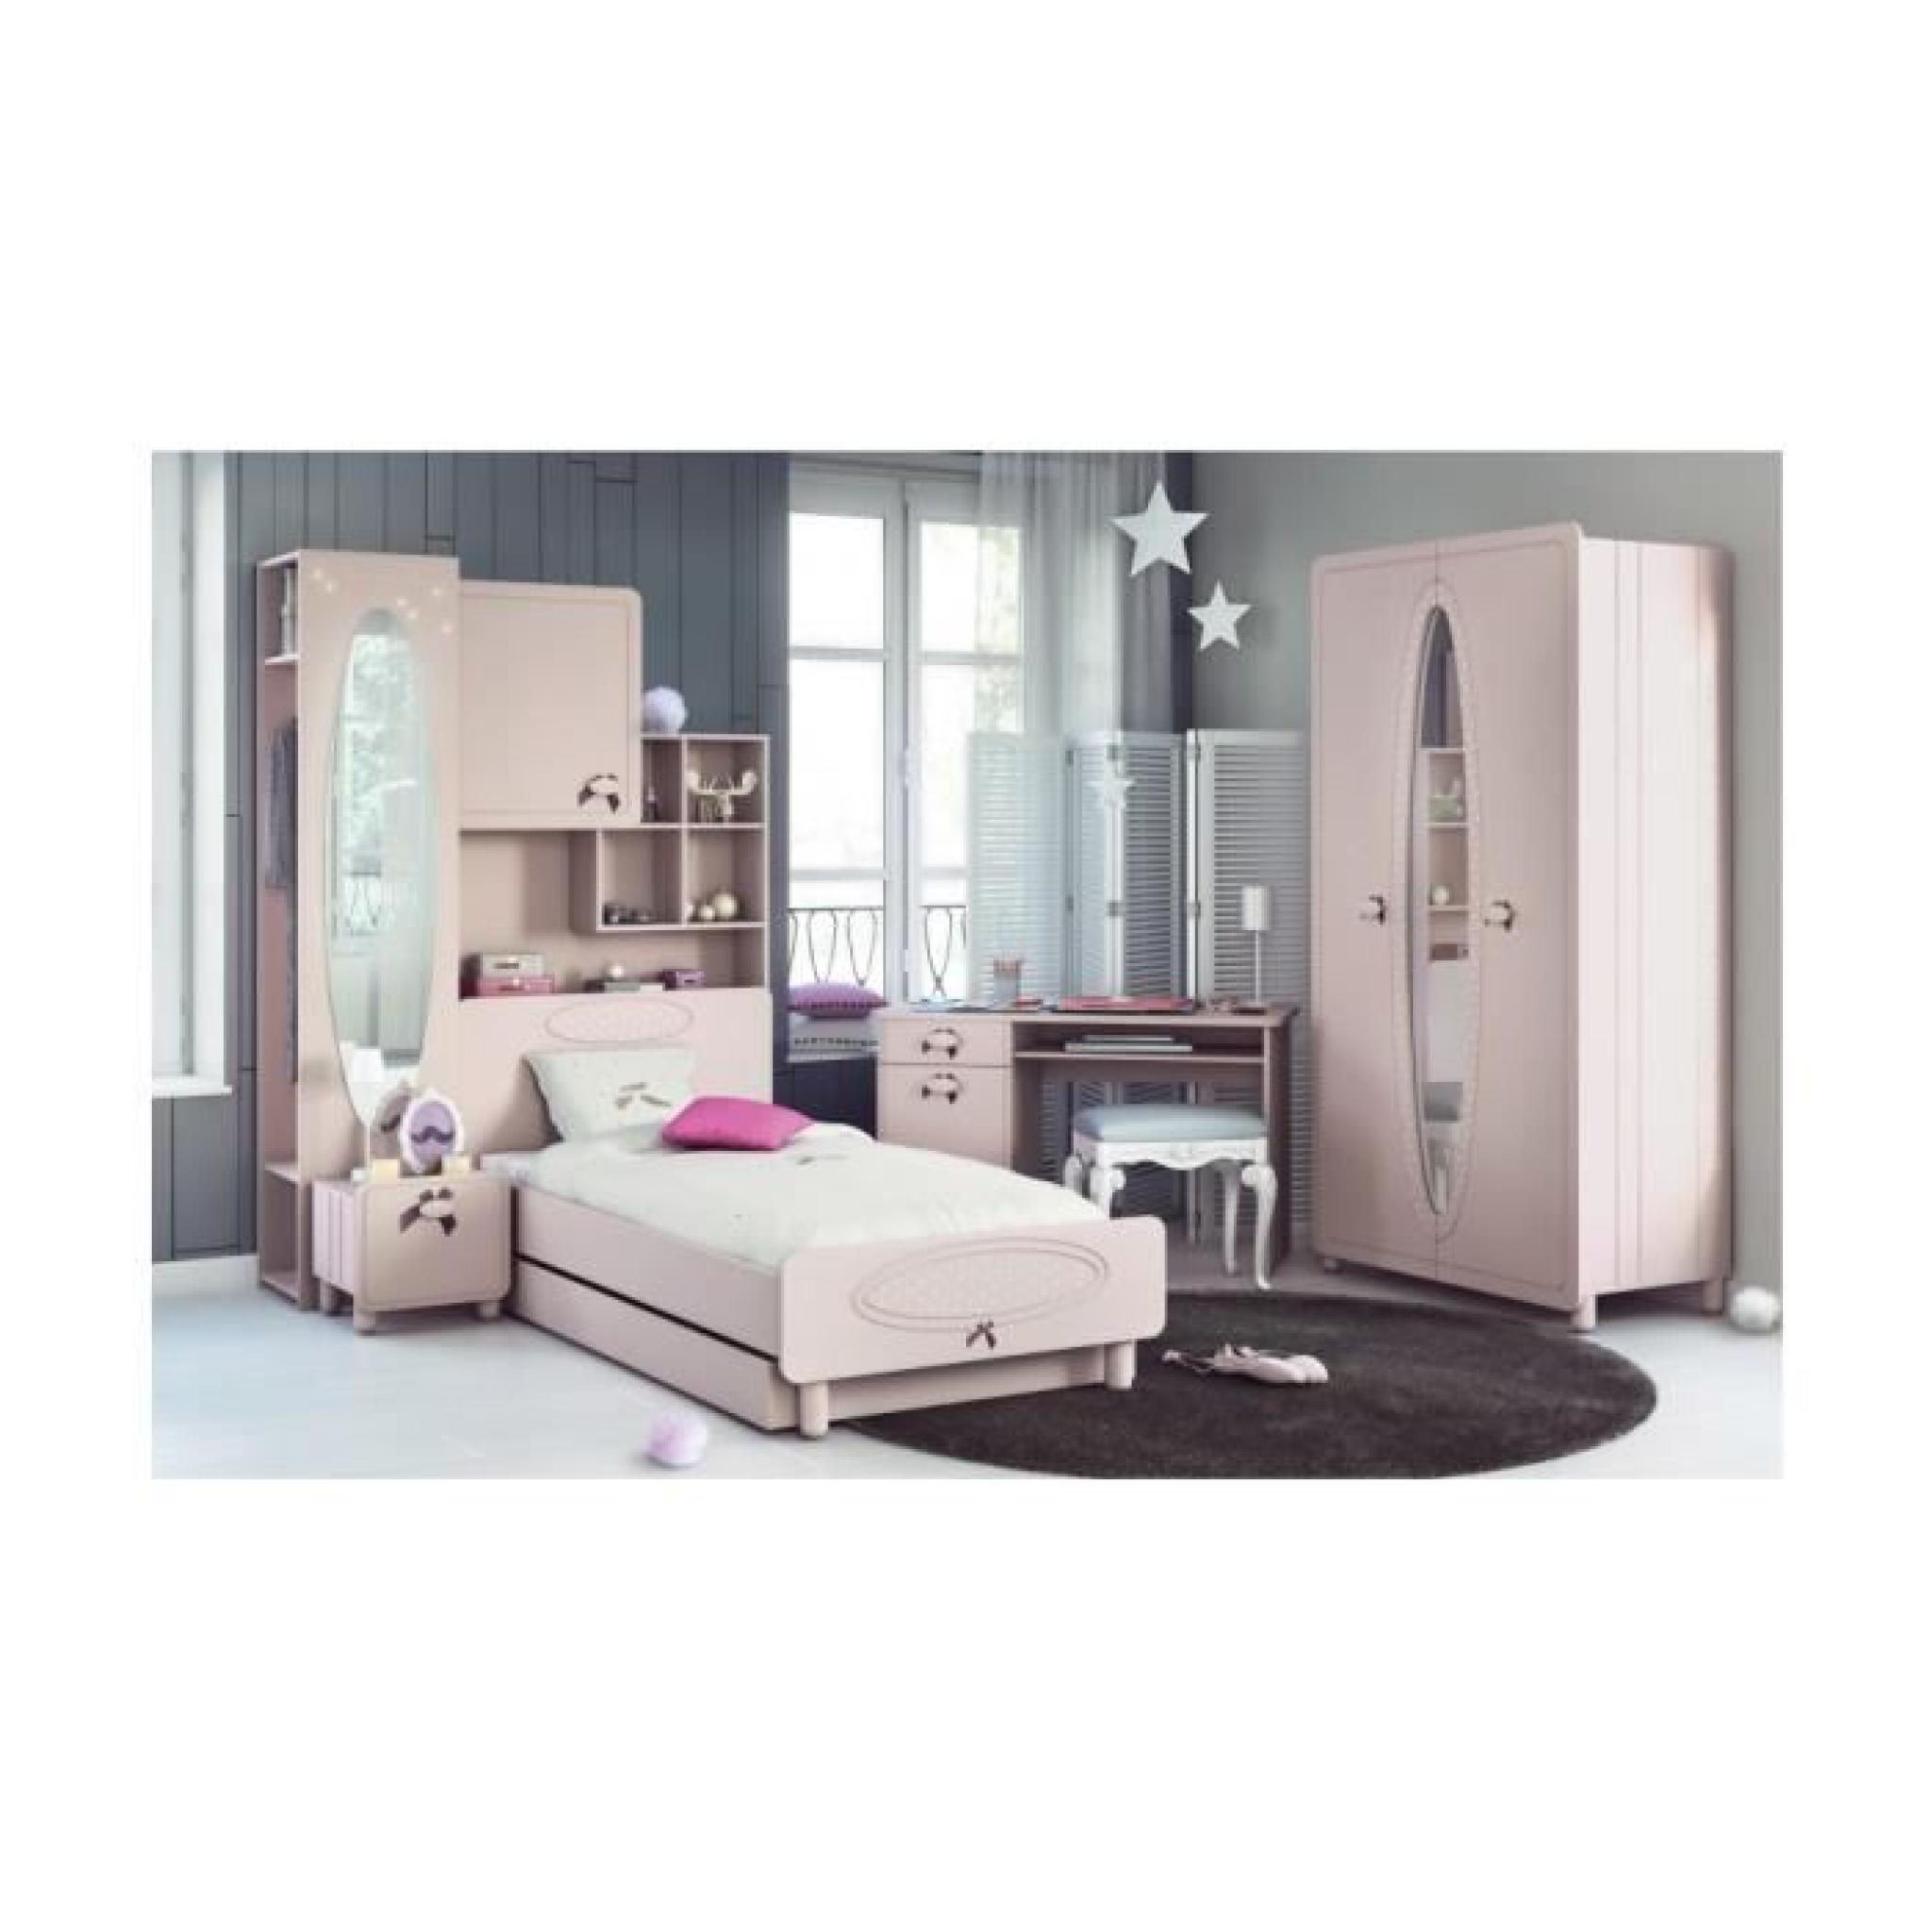 armoire chambre enfant pas cher maison design. Black Bedroom Furniture Sets. Home Design Ideas